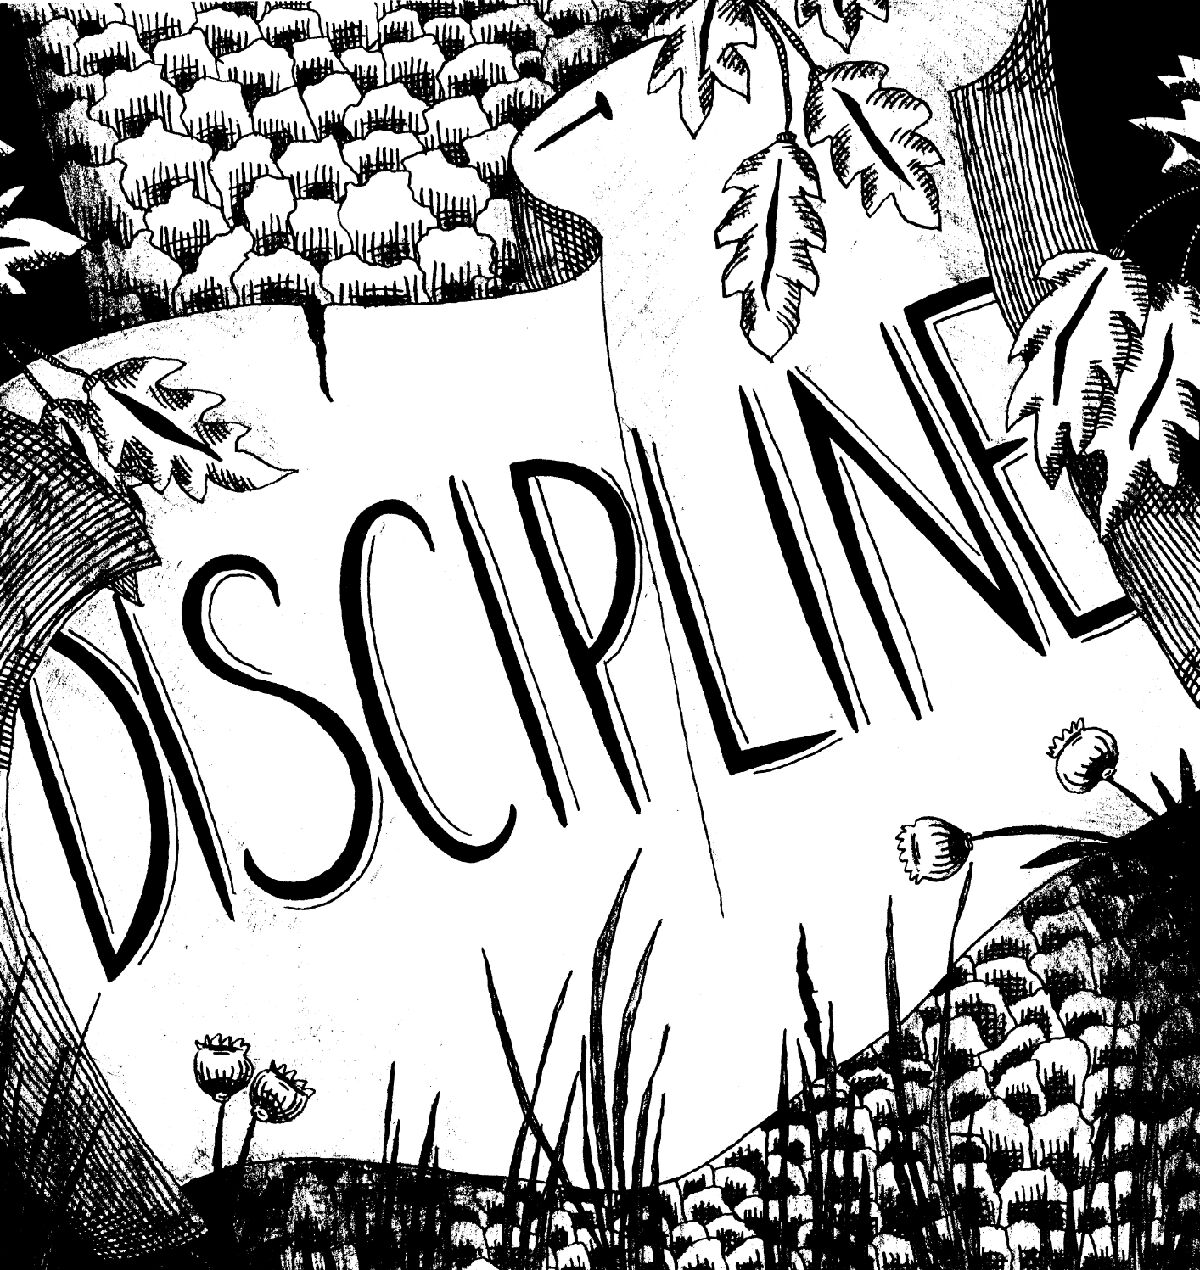 Short Essay on Self-Discipline and its Importance